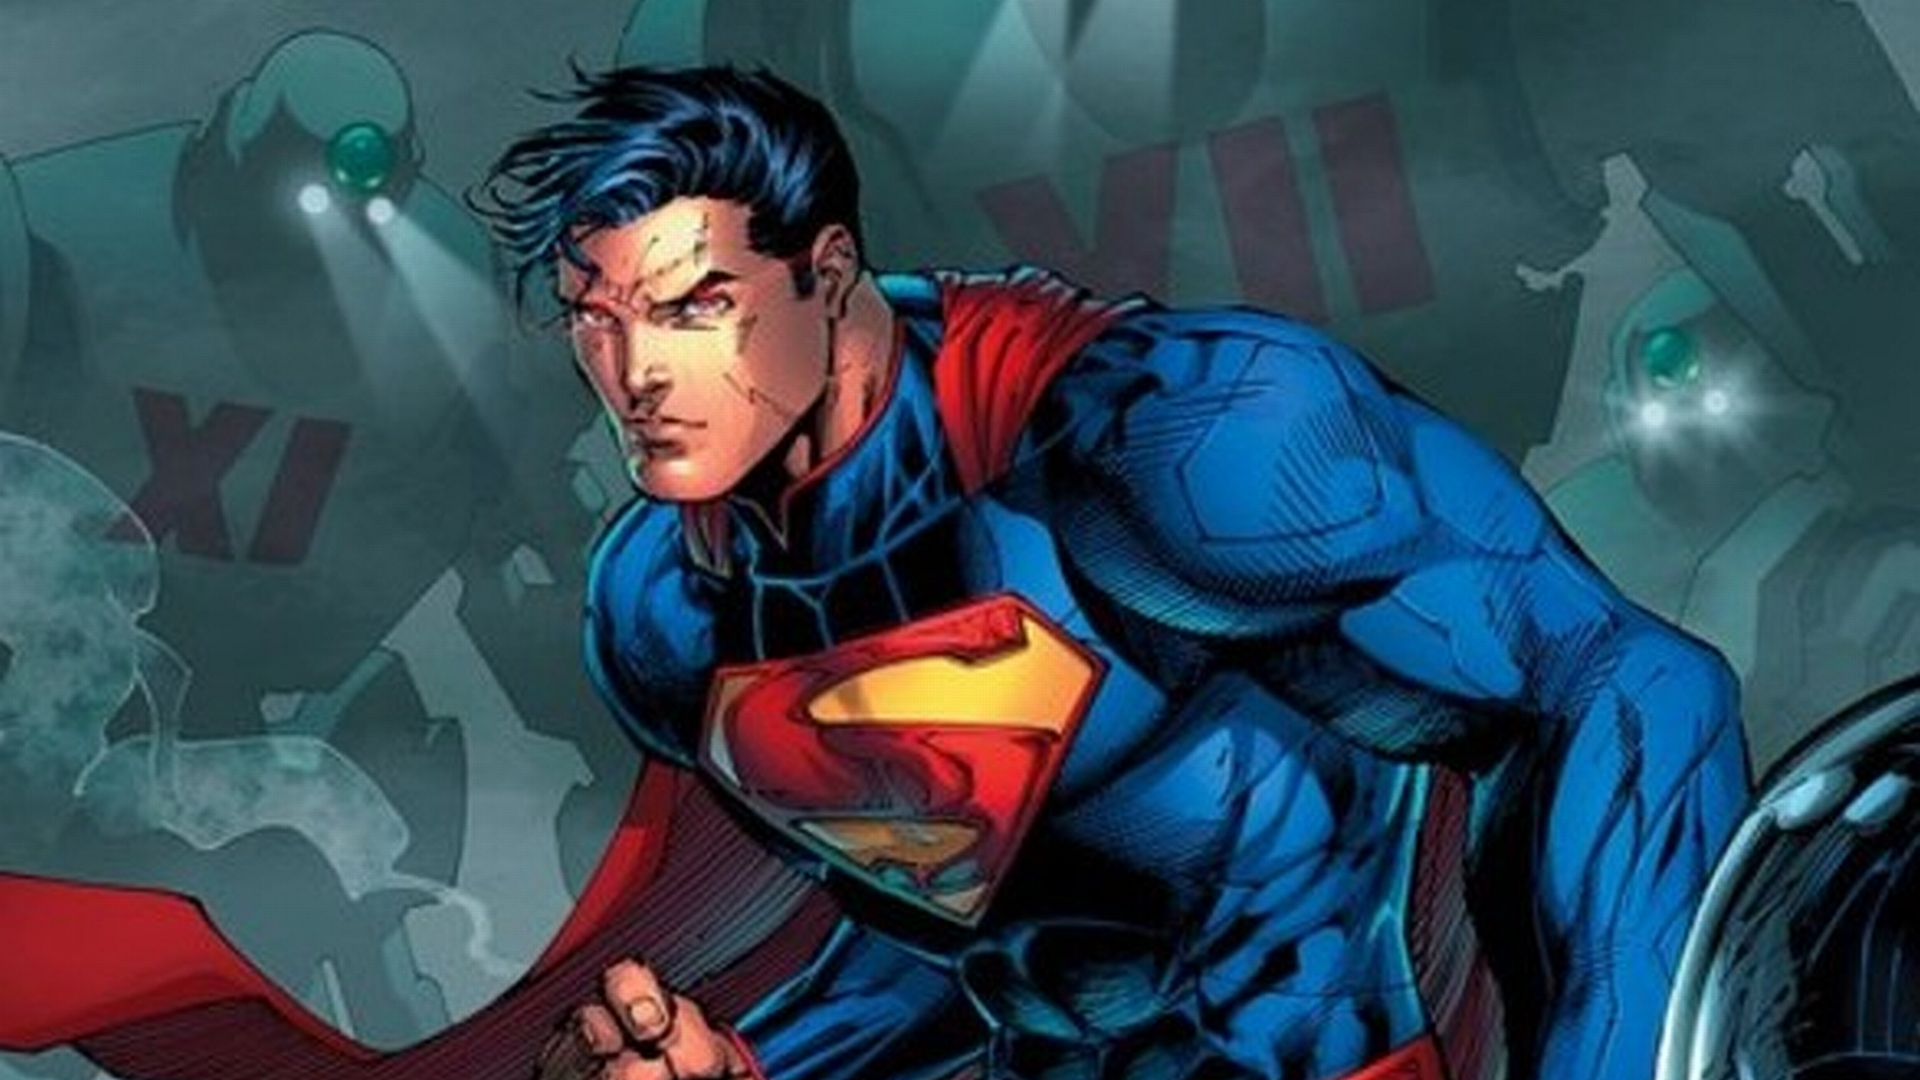 Superman Cool Wallpapers Group (82+)